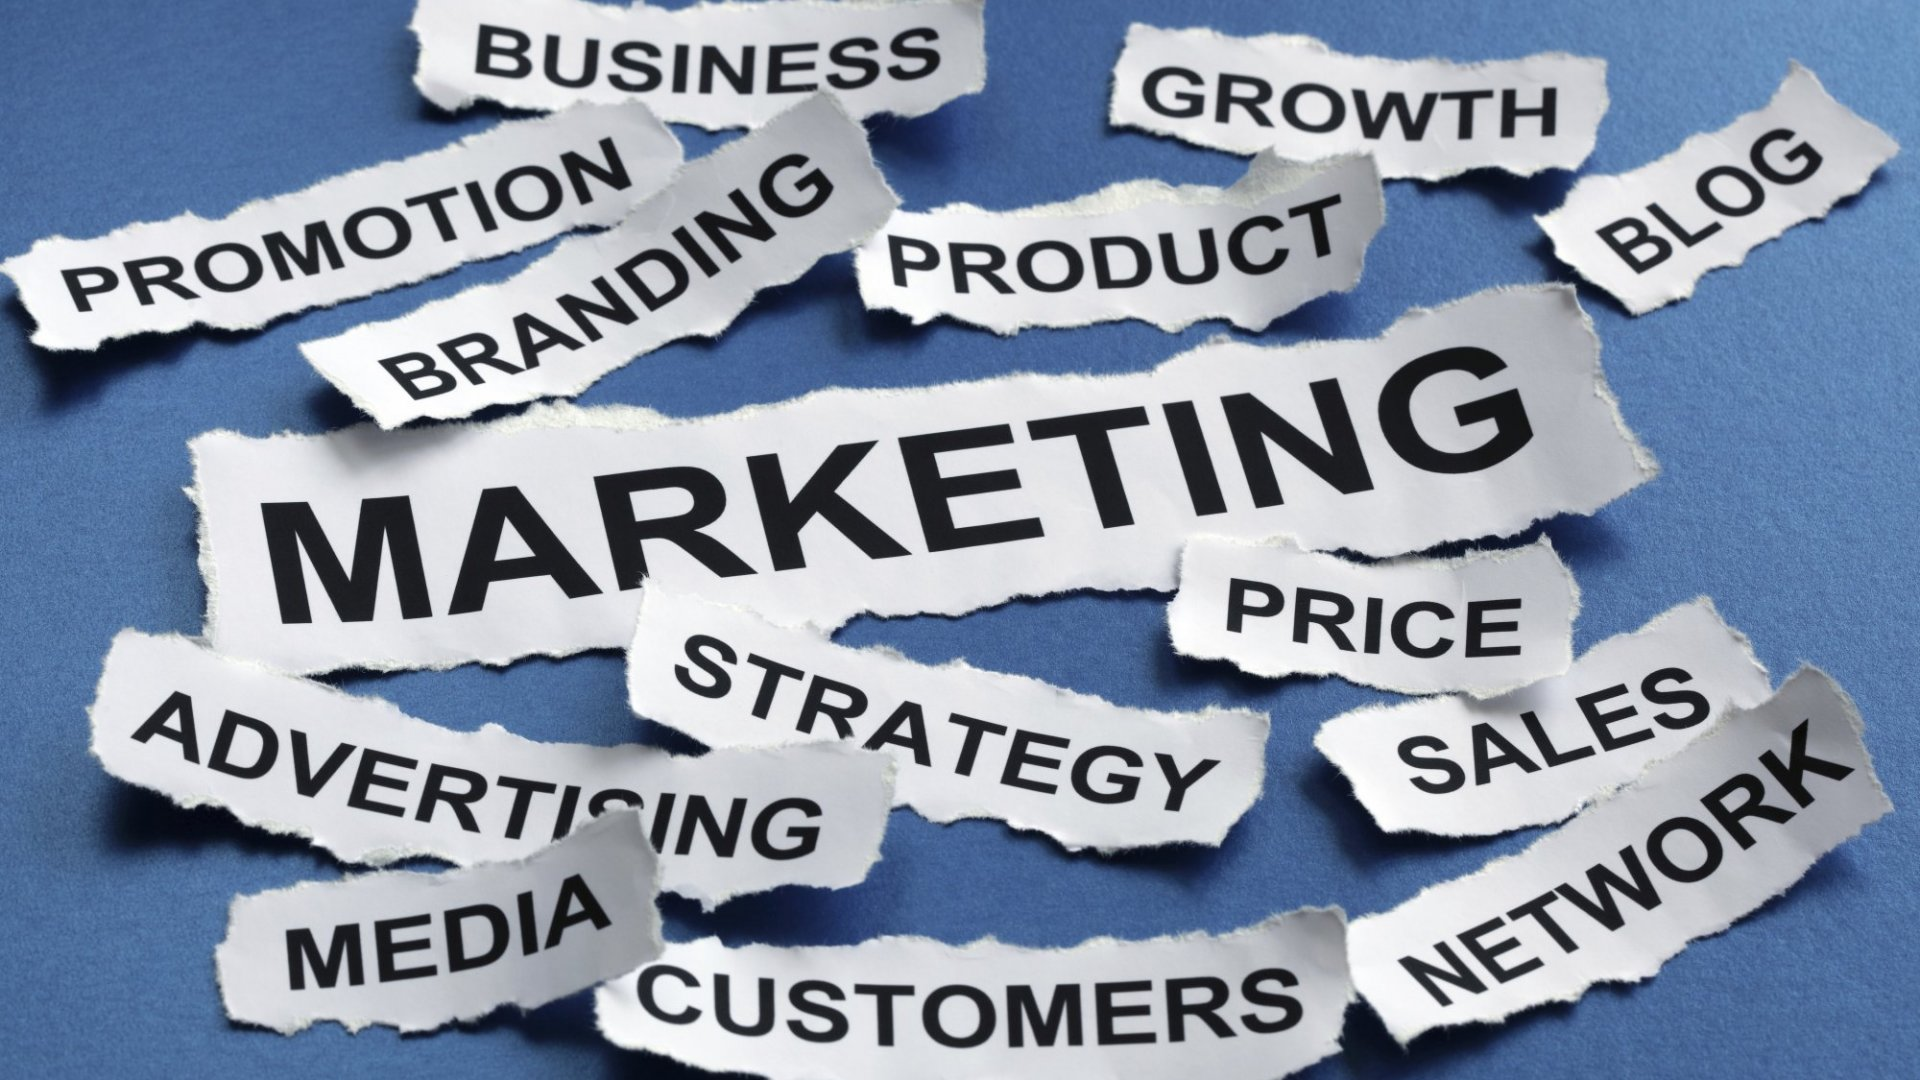 Why Marketing Is More Important Than Having a Killer Product